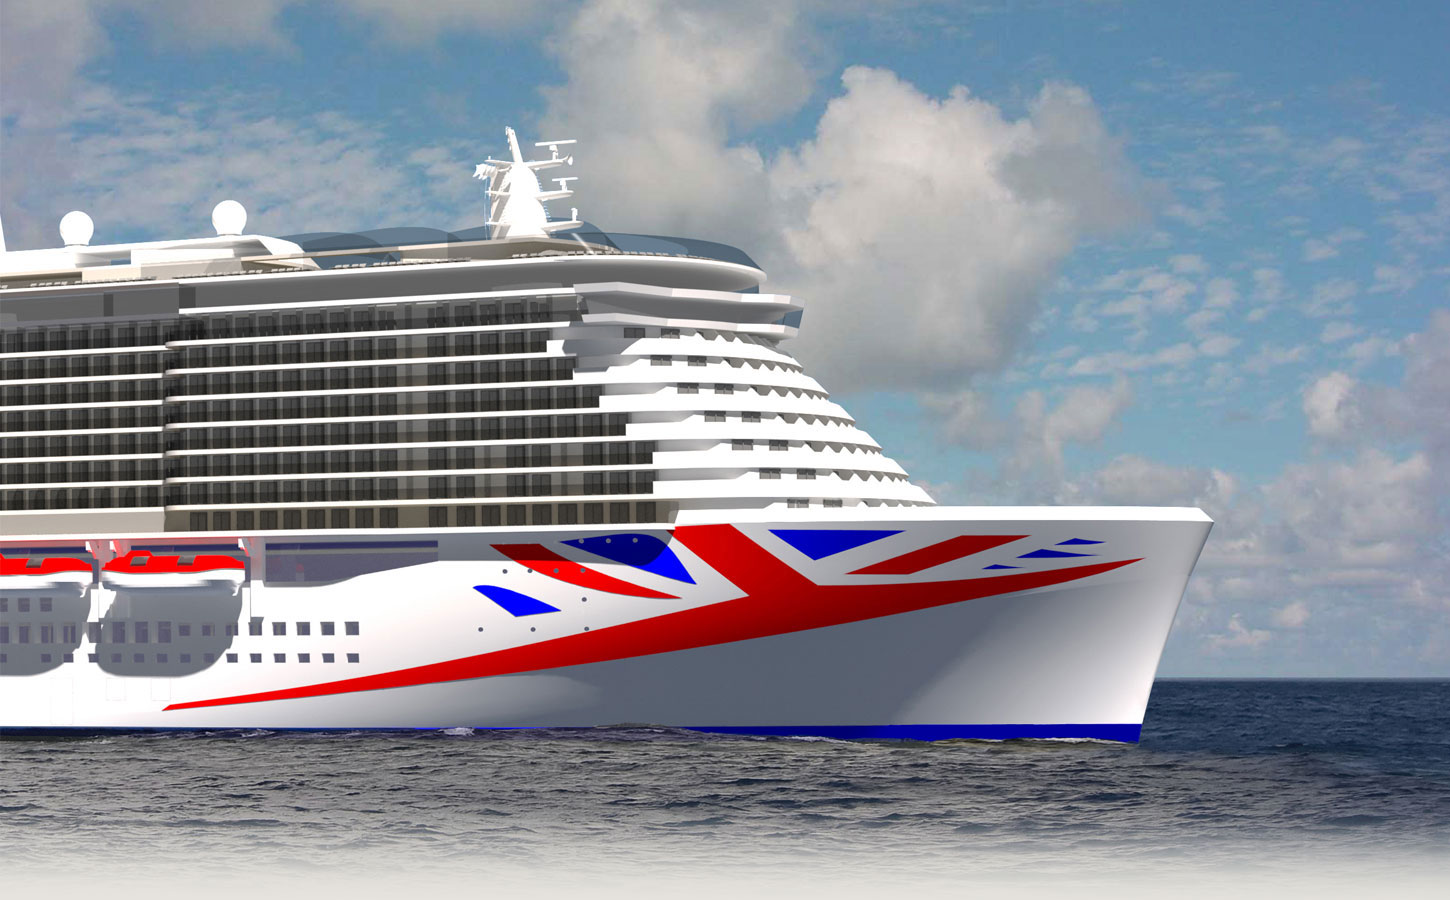 Name P&O Cruises' new ship to win your place in history